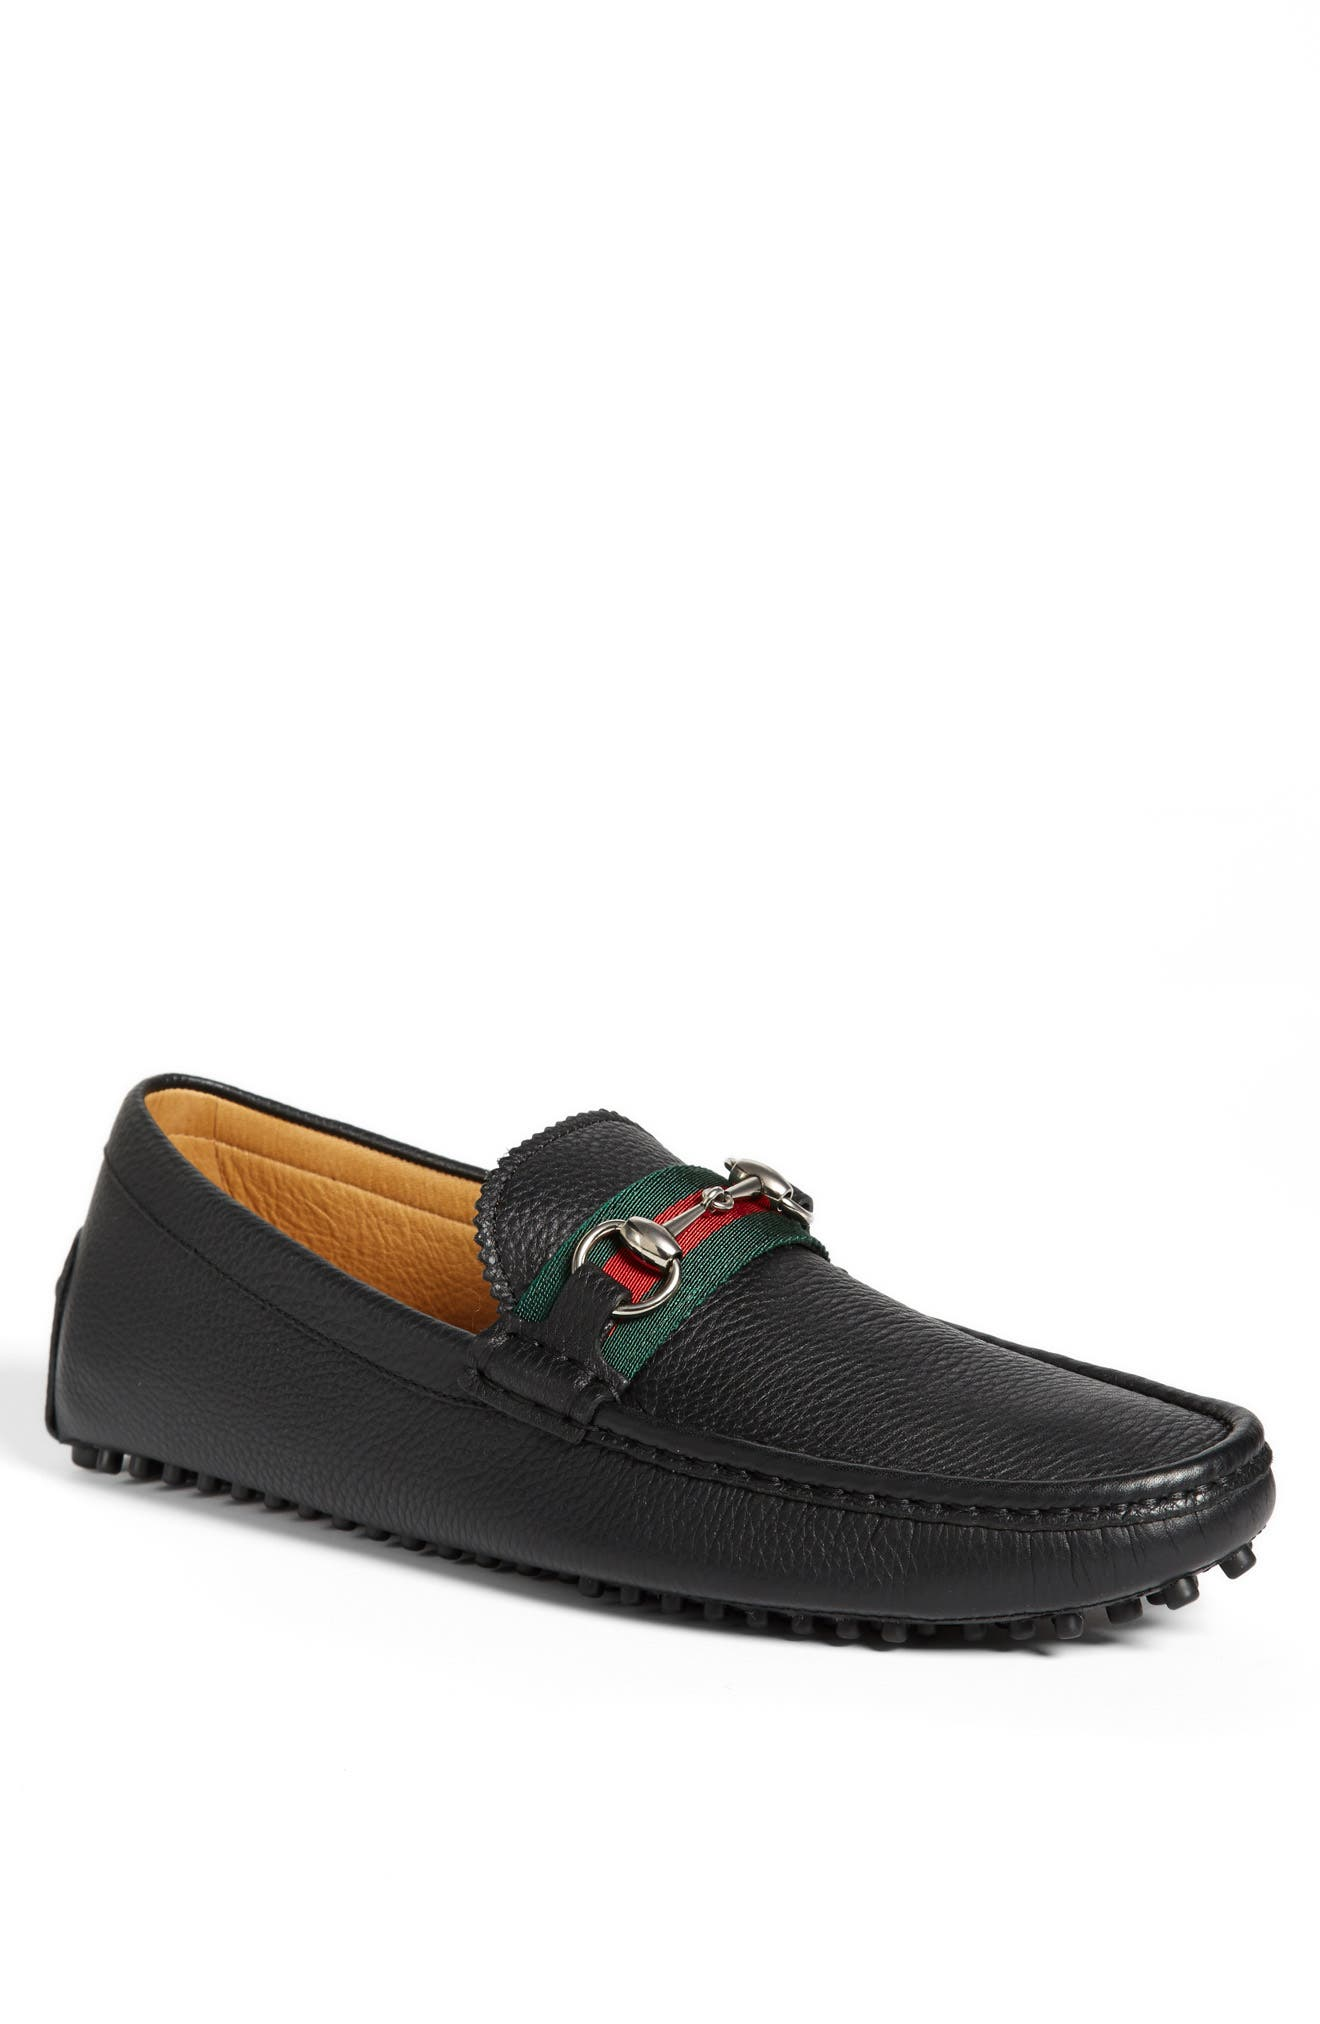 GUCCI, 'Damo' Driving Shoe, Main thumbnail 1, color, BLACK